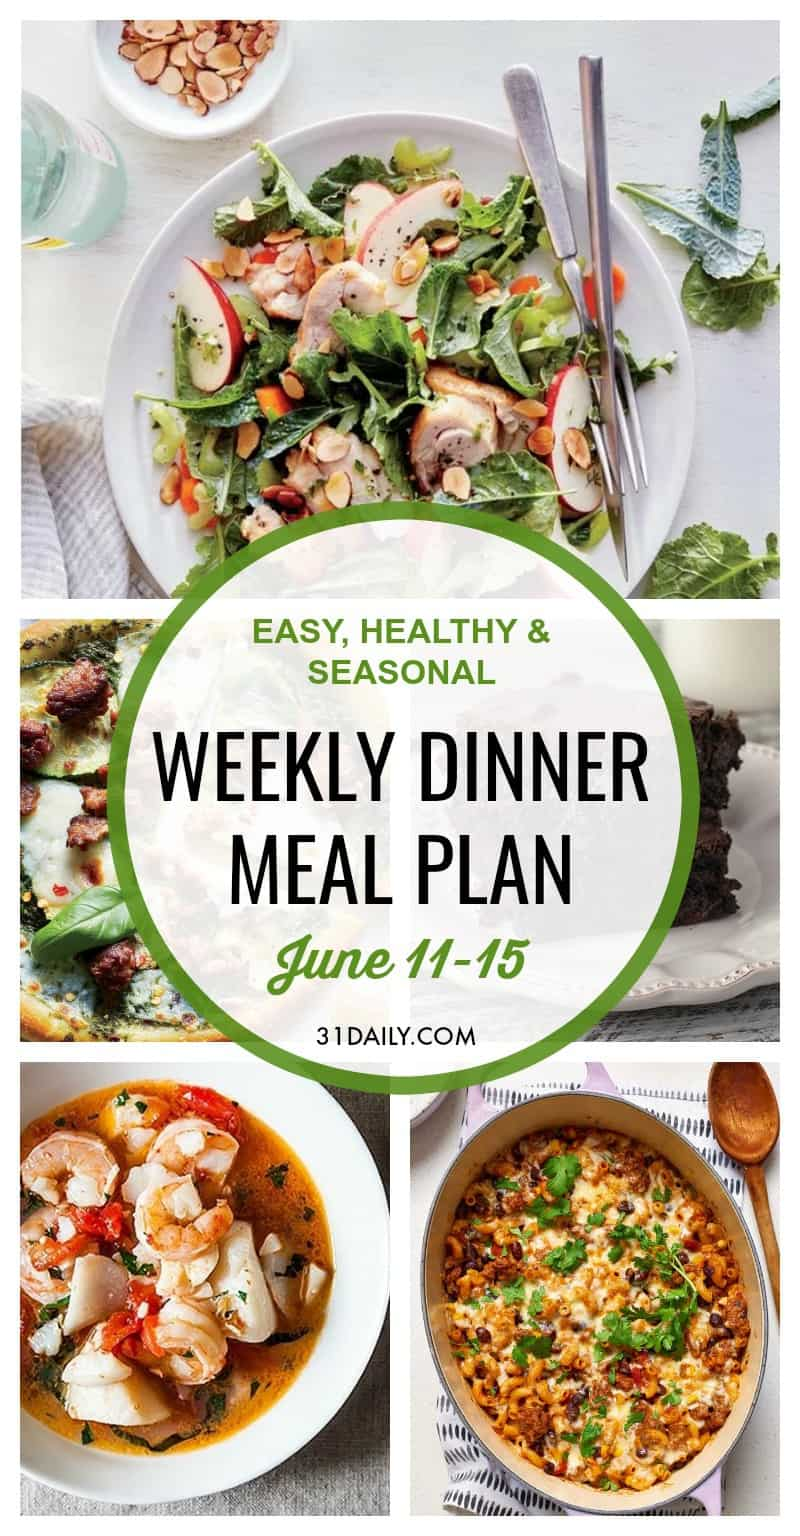 Weekly Dinner Meal Plan // Week 24 | 31Daily.com